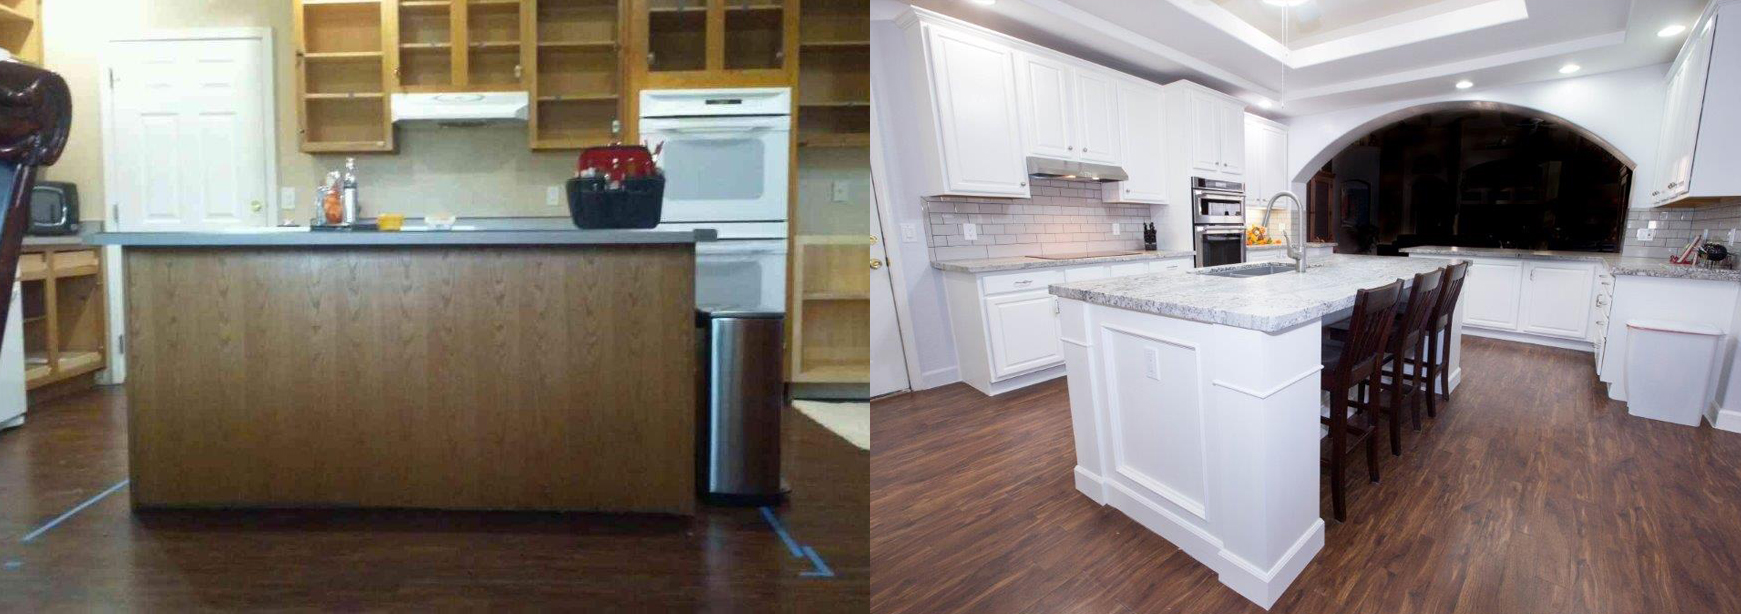 Kitchen Cabinet Refacing Phoenix Cabinet Refinishing Phoenix Az & Tempe Arizona  Kitchens Bathrooms